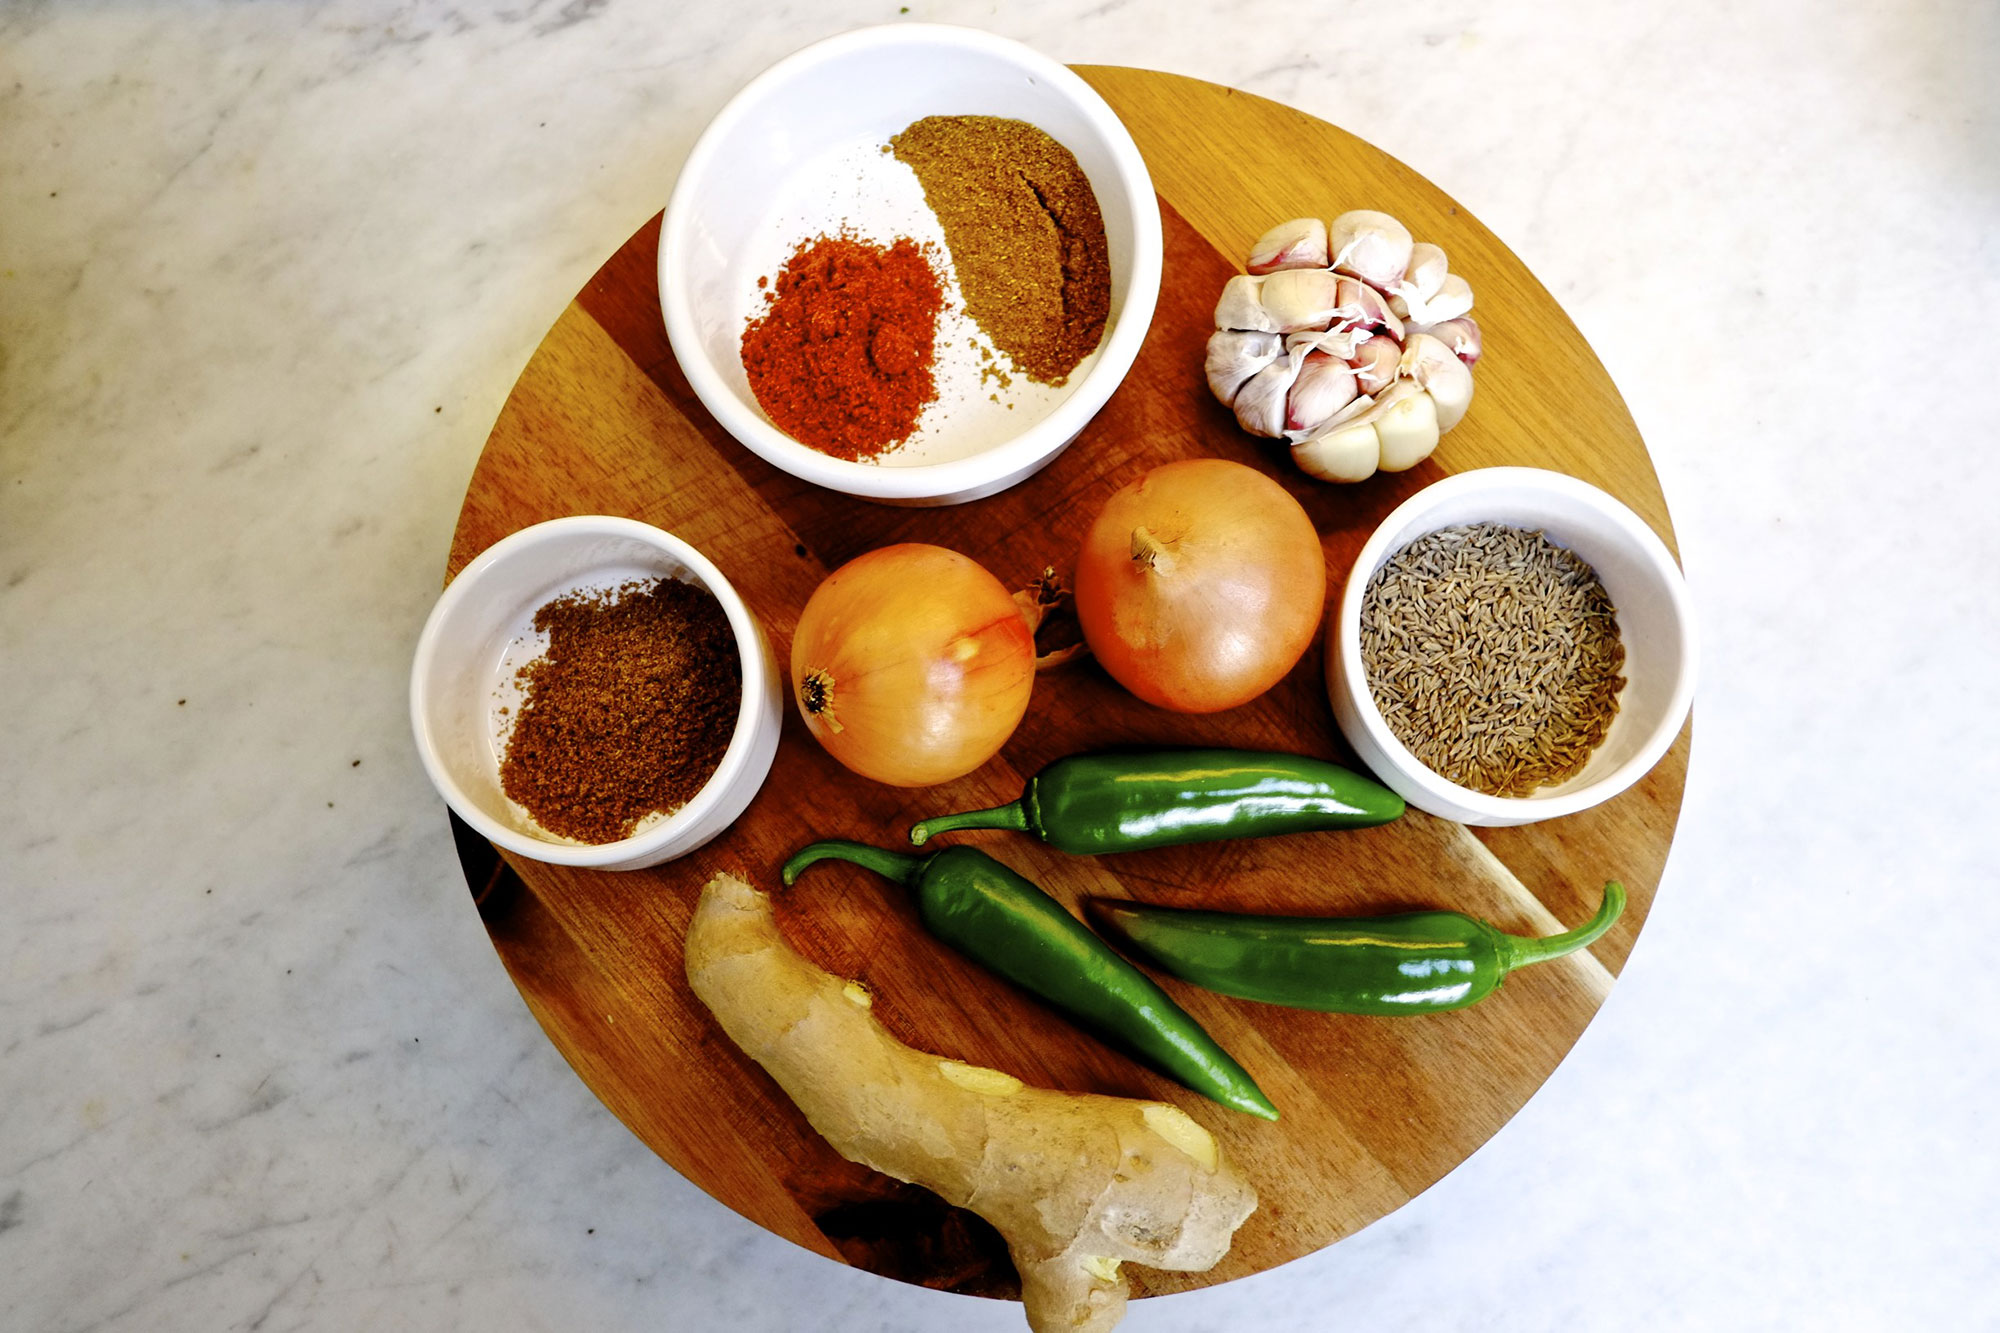 Spices on round board